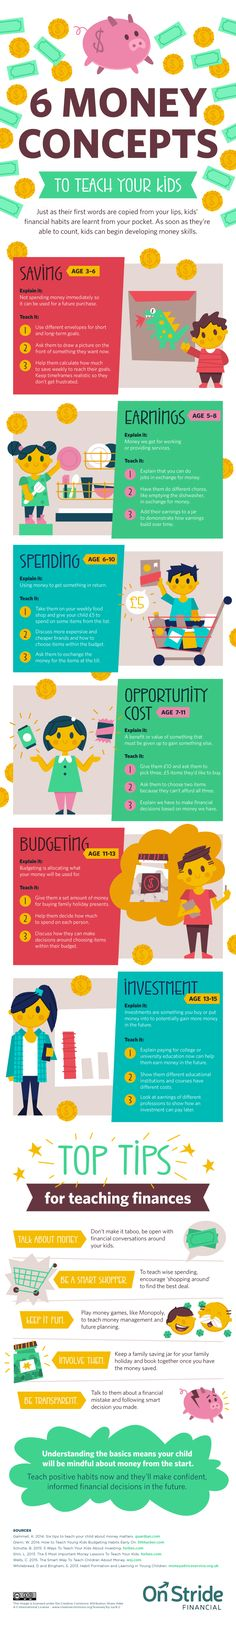 From saving to budgeting to investing, here's what to teach your kids about money at every stage.